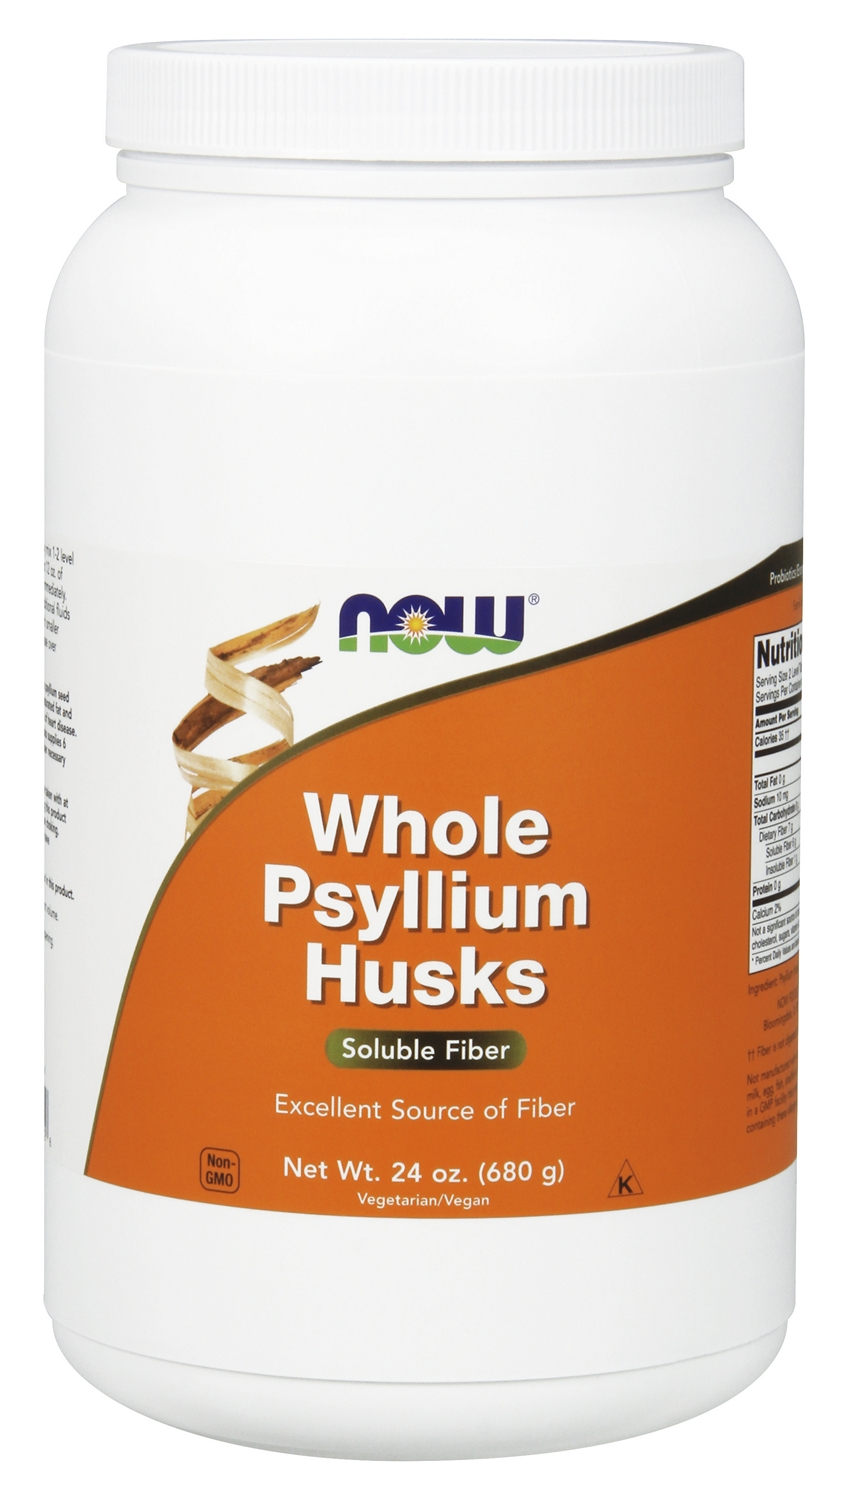 Whole Psyllium Husks 24 oz (680 g) by NOW